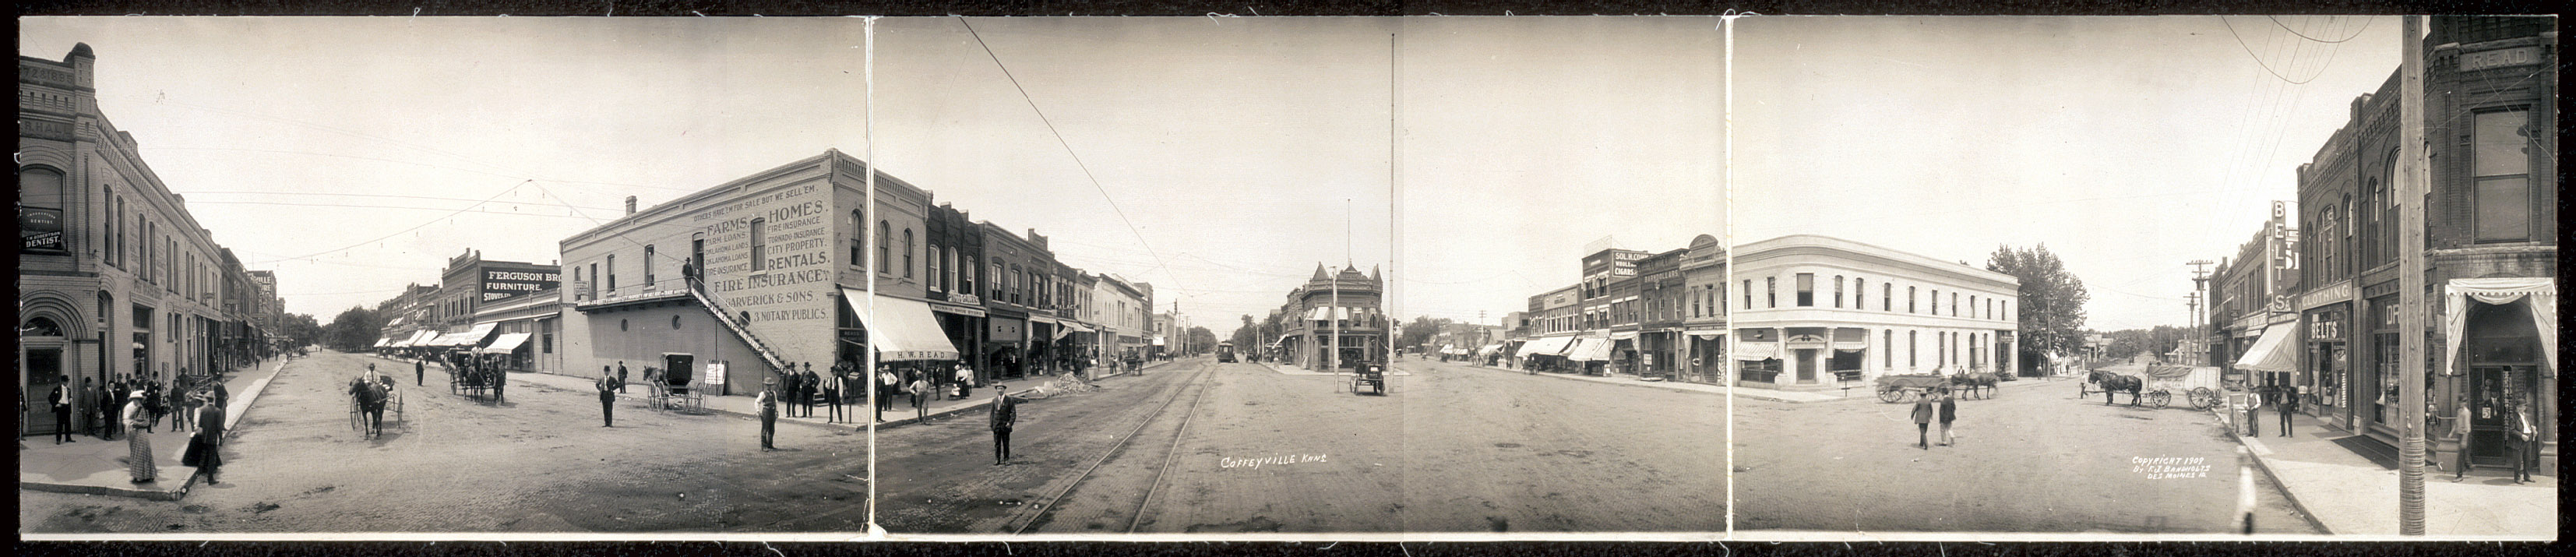 http://www.ghostcowboy.com/files/images/coffeyville_1909.jpg